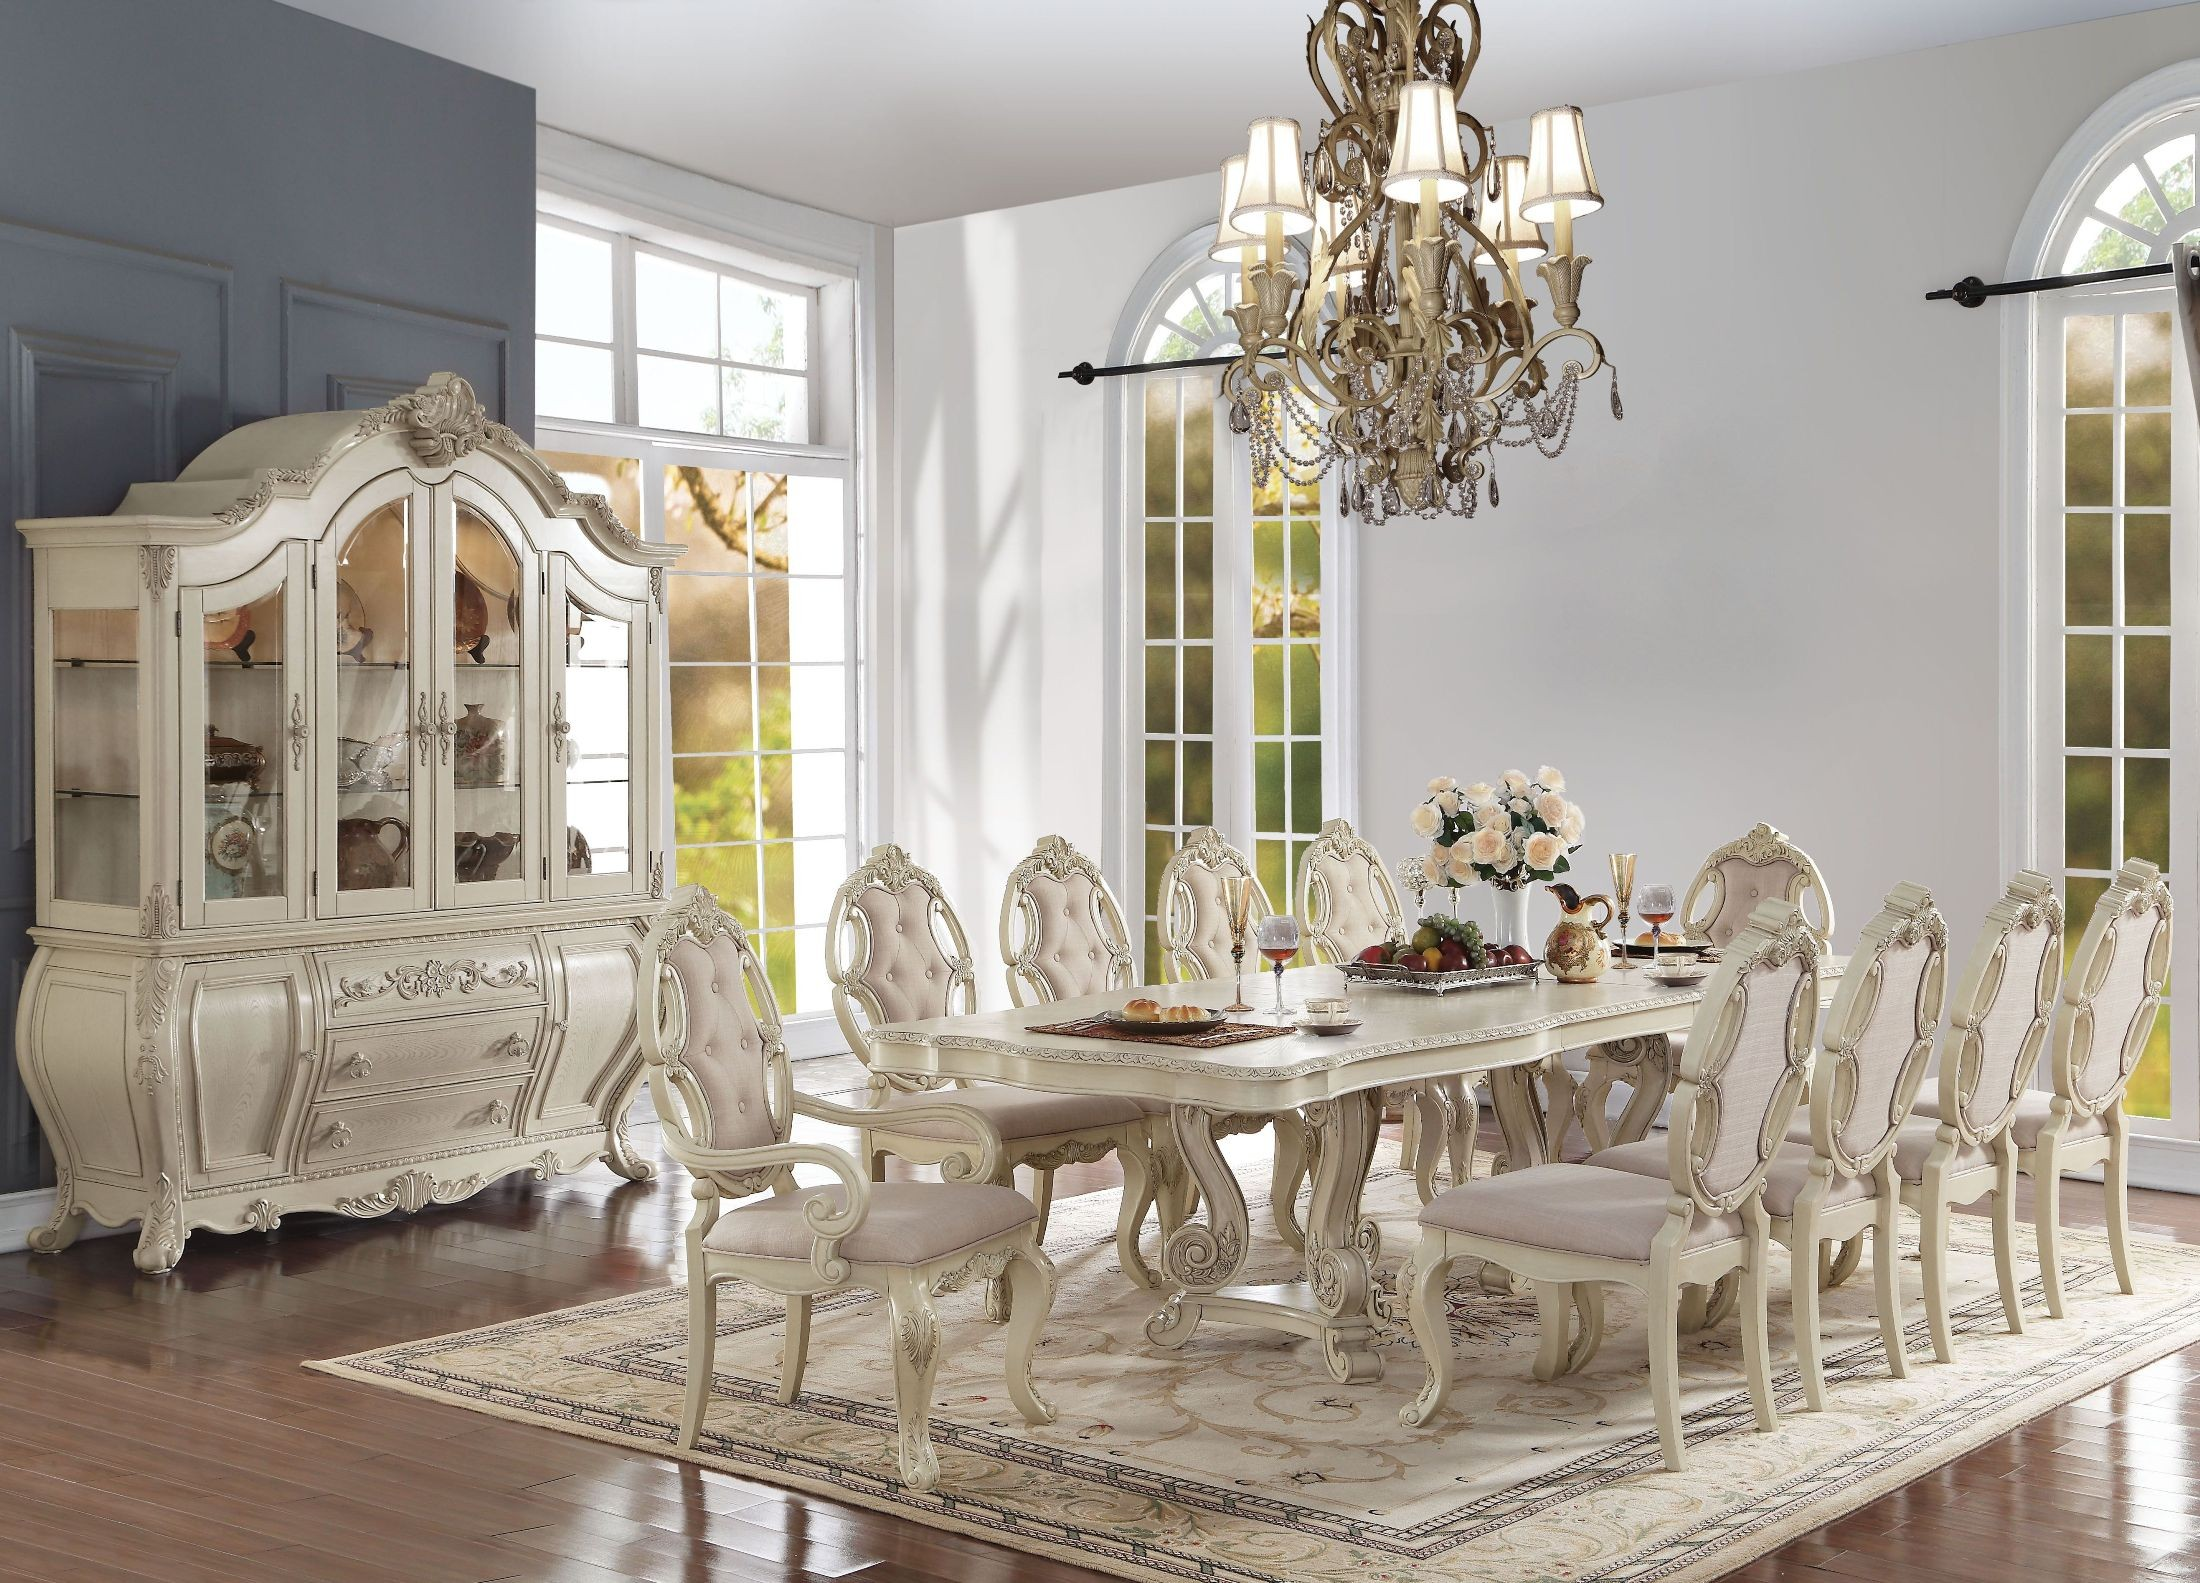 Ragenardus Antique White Double Pedestal Dining Room Set from Acme ...